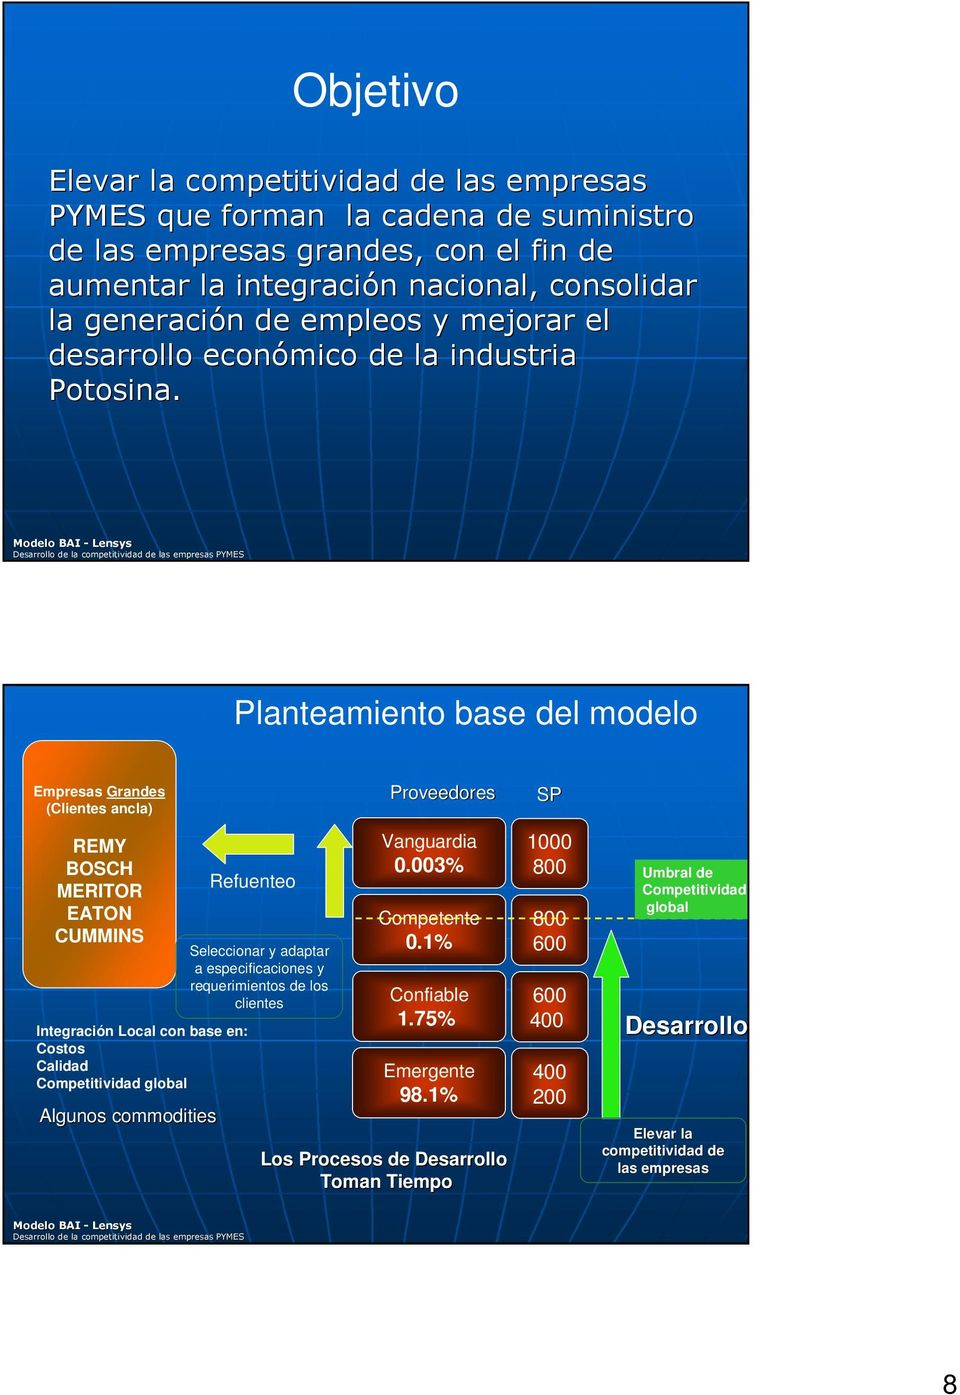 Planteamiento base del modelo Empresas Grandes (Clientes ancla) REMY BOSCH MERITOR EATON CUMMINS Integración Local con base en: Costos Calidad Competitividad global Algunos commodities